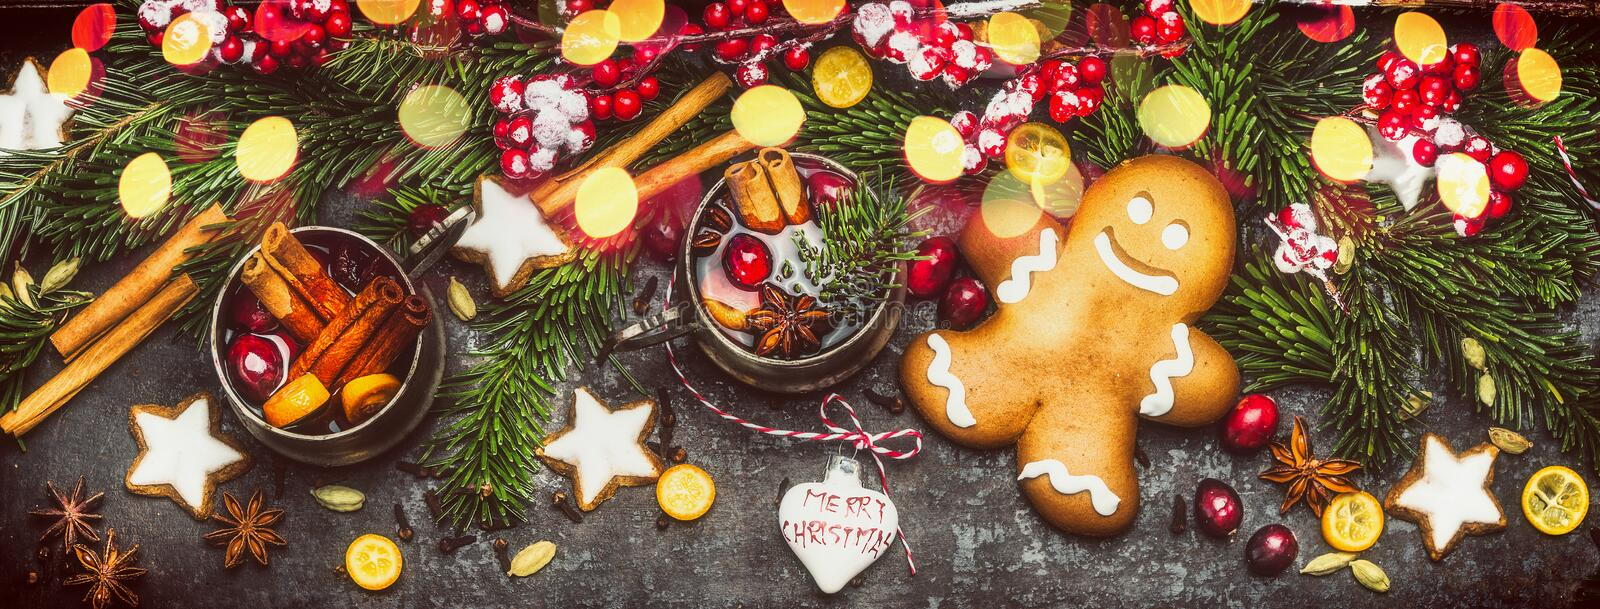 Download Christmas Banner With Gingerbread Man, Cookies, Mulled Wine ,holiday Decorations , Fir Branches And Festive Bokeh Lighting On Dark Stock Photo - Image of bokeh, christmas: 80838264